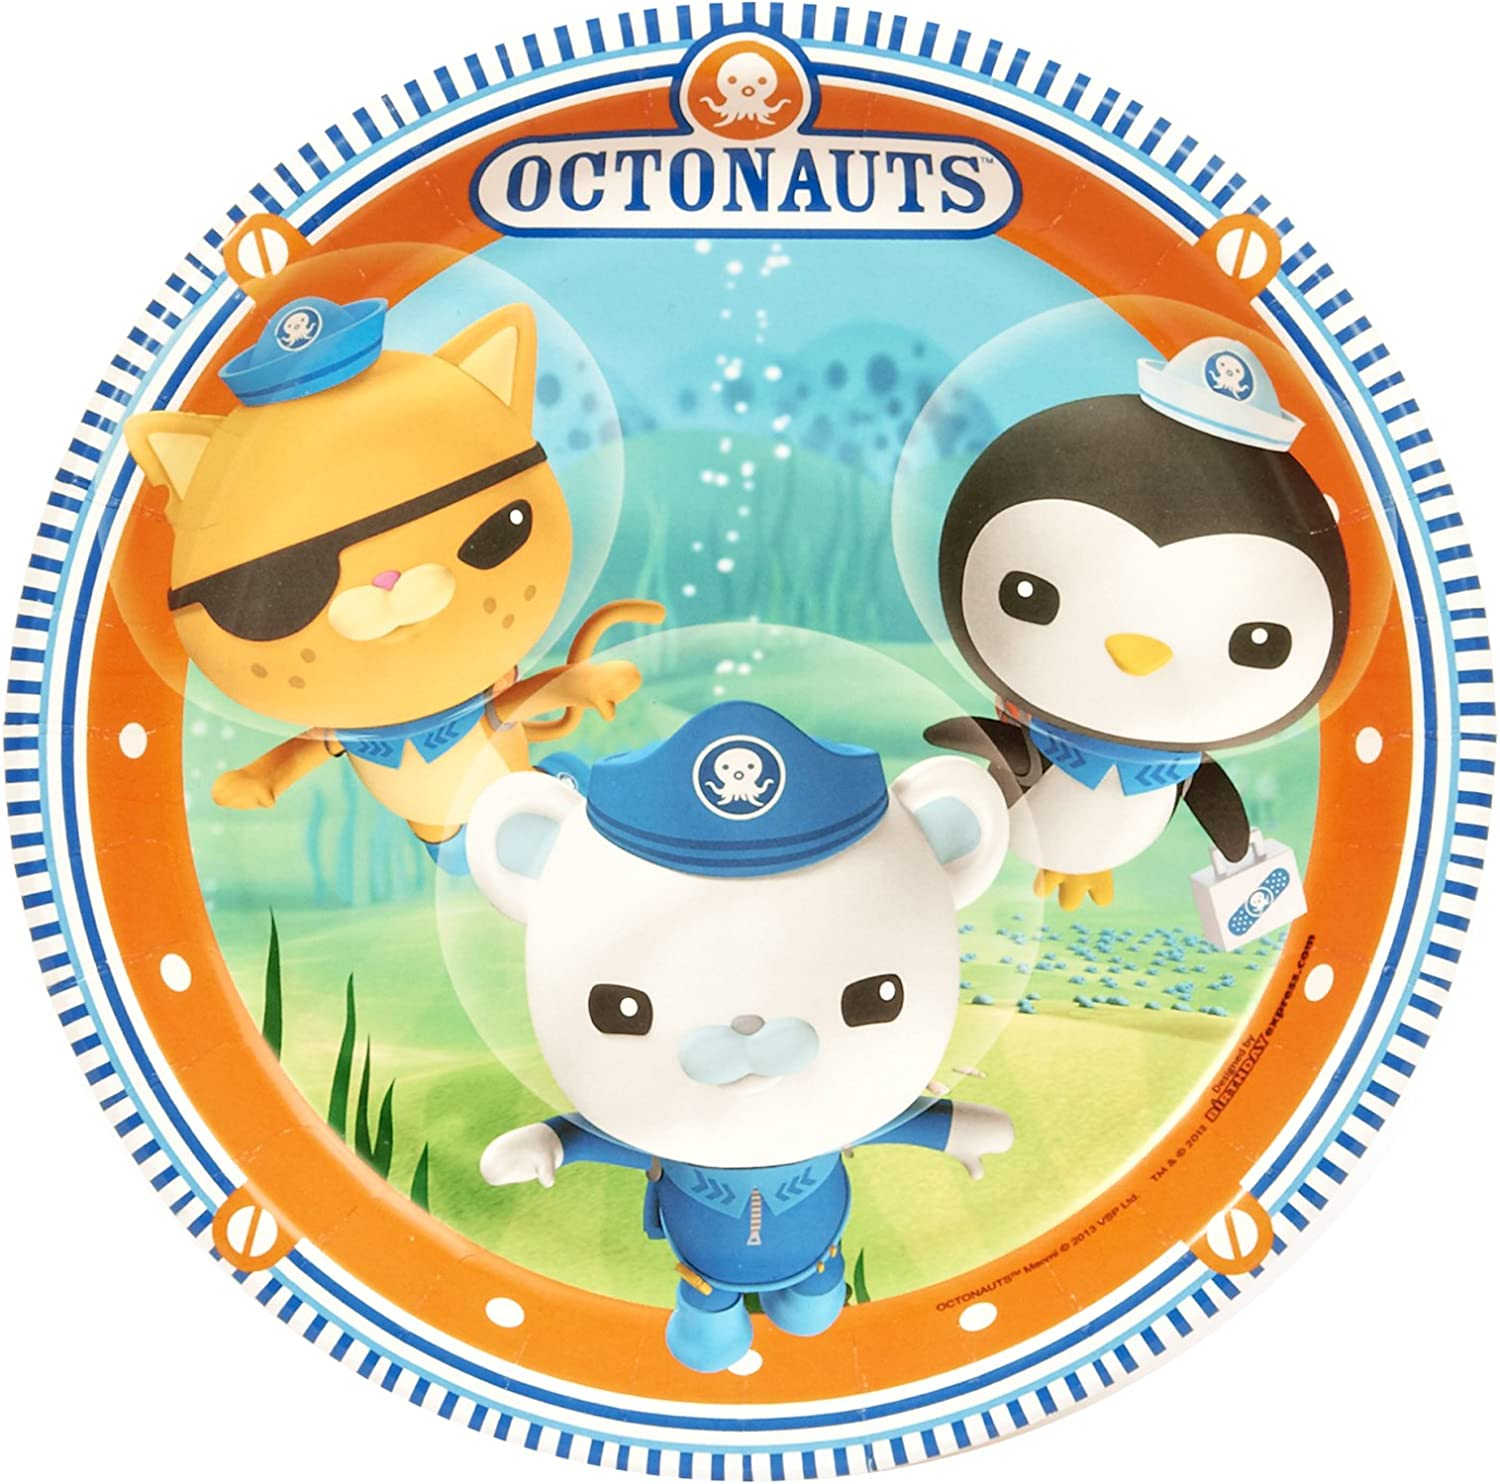 Octonauts Birthday Party Supplies 48 Pack Lunch Plates